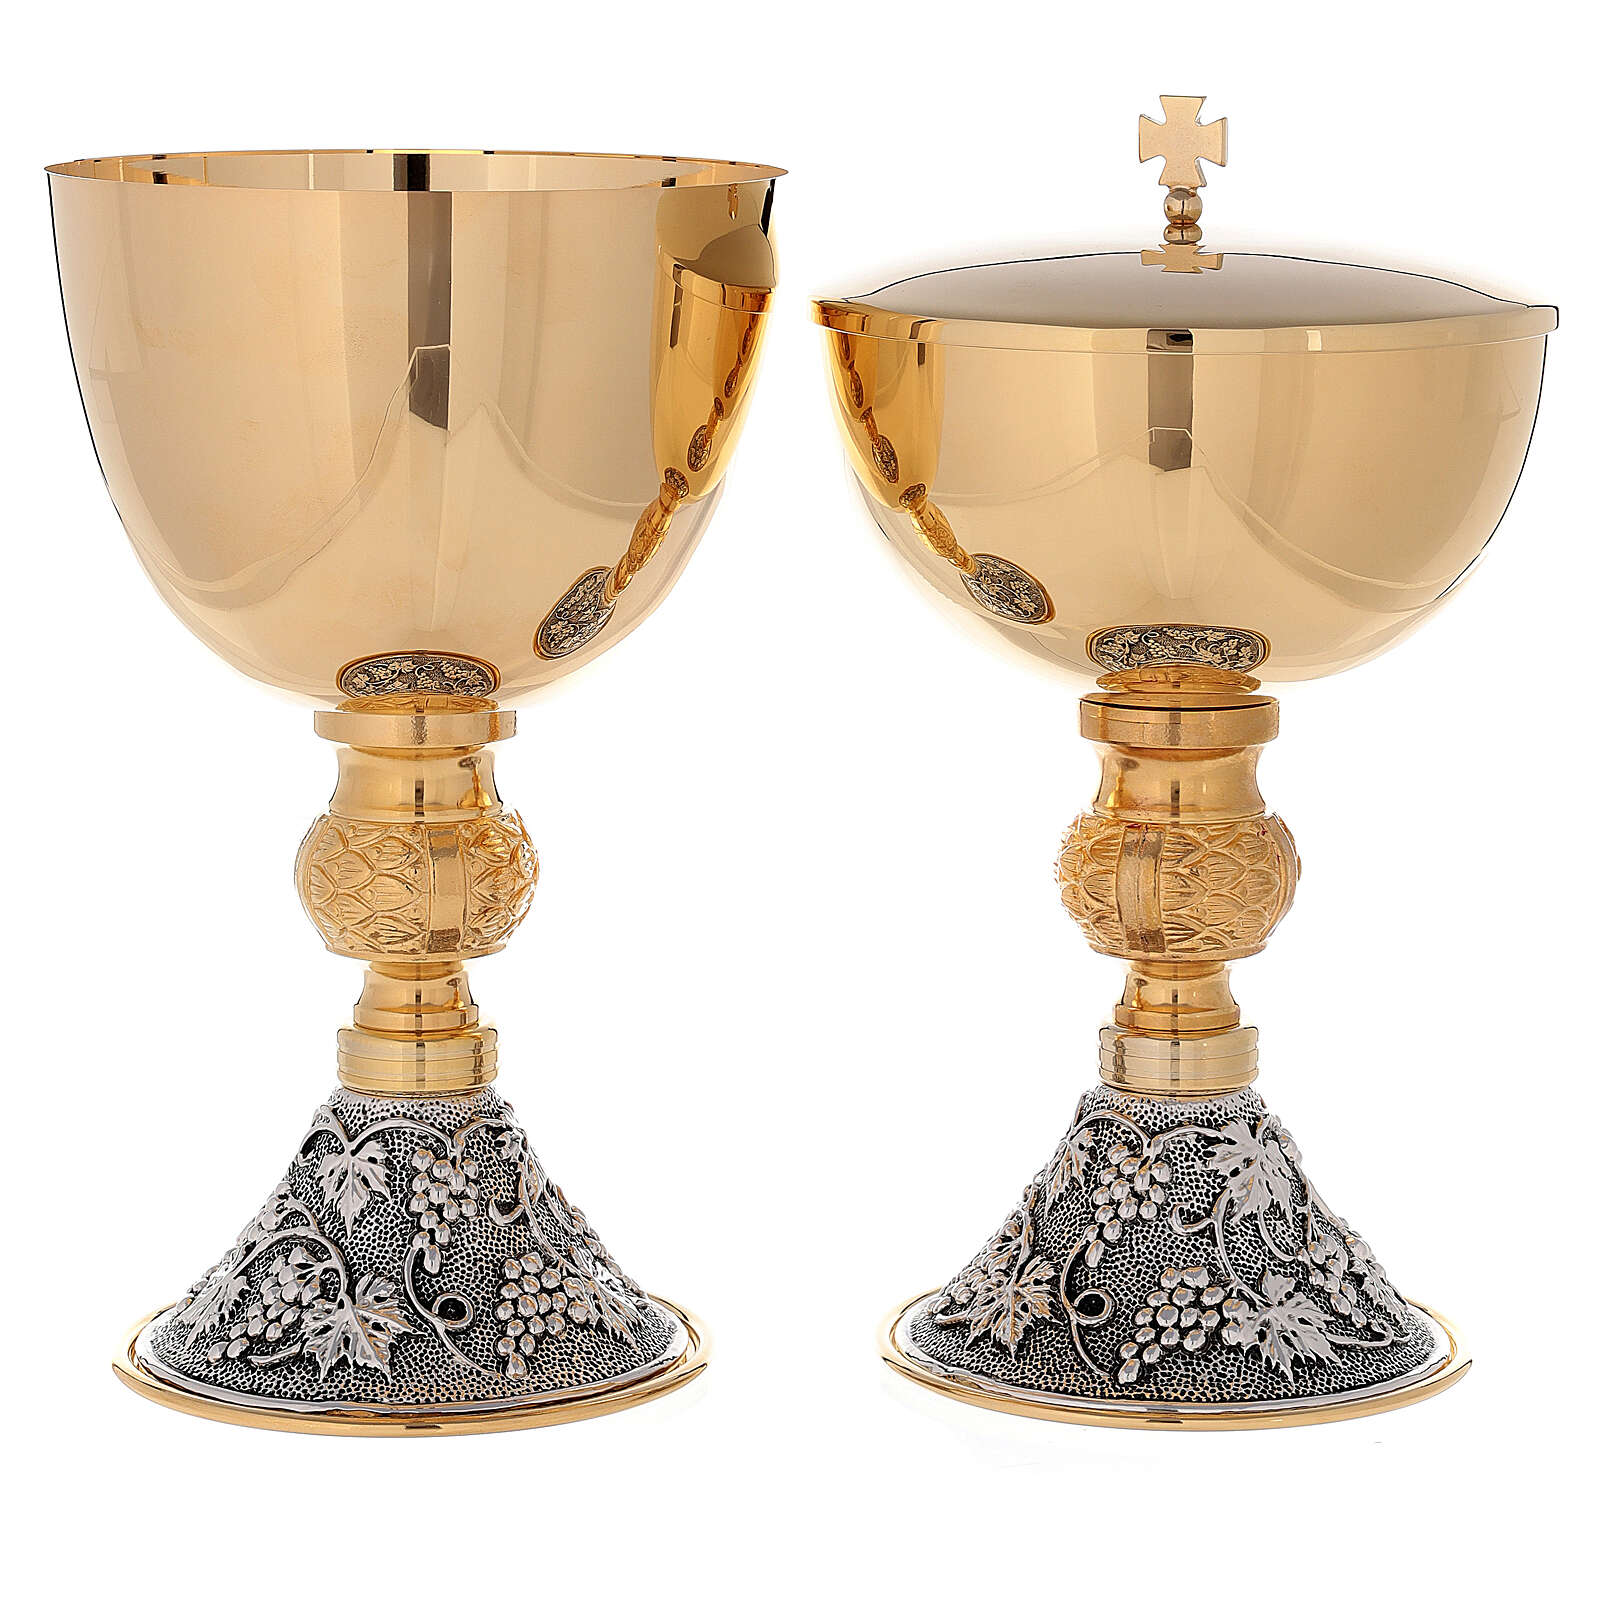 Chalice and ciborium 24-karat gold plated brass on grapes and leaves base 4